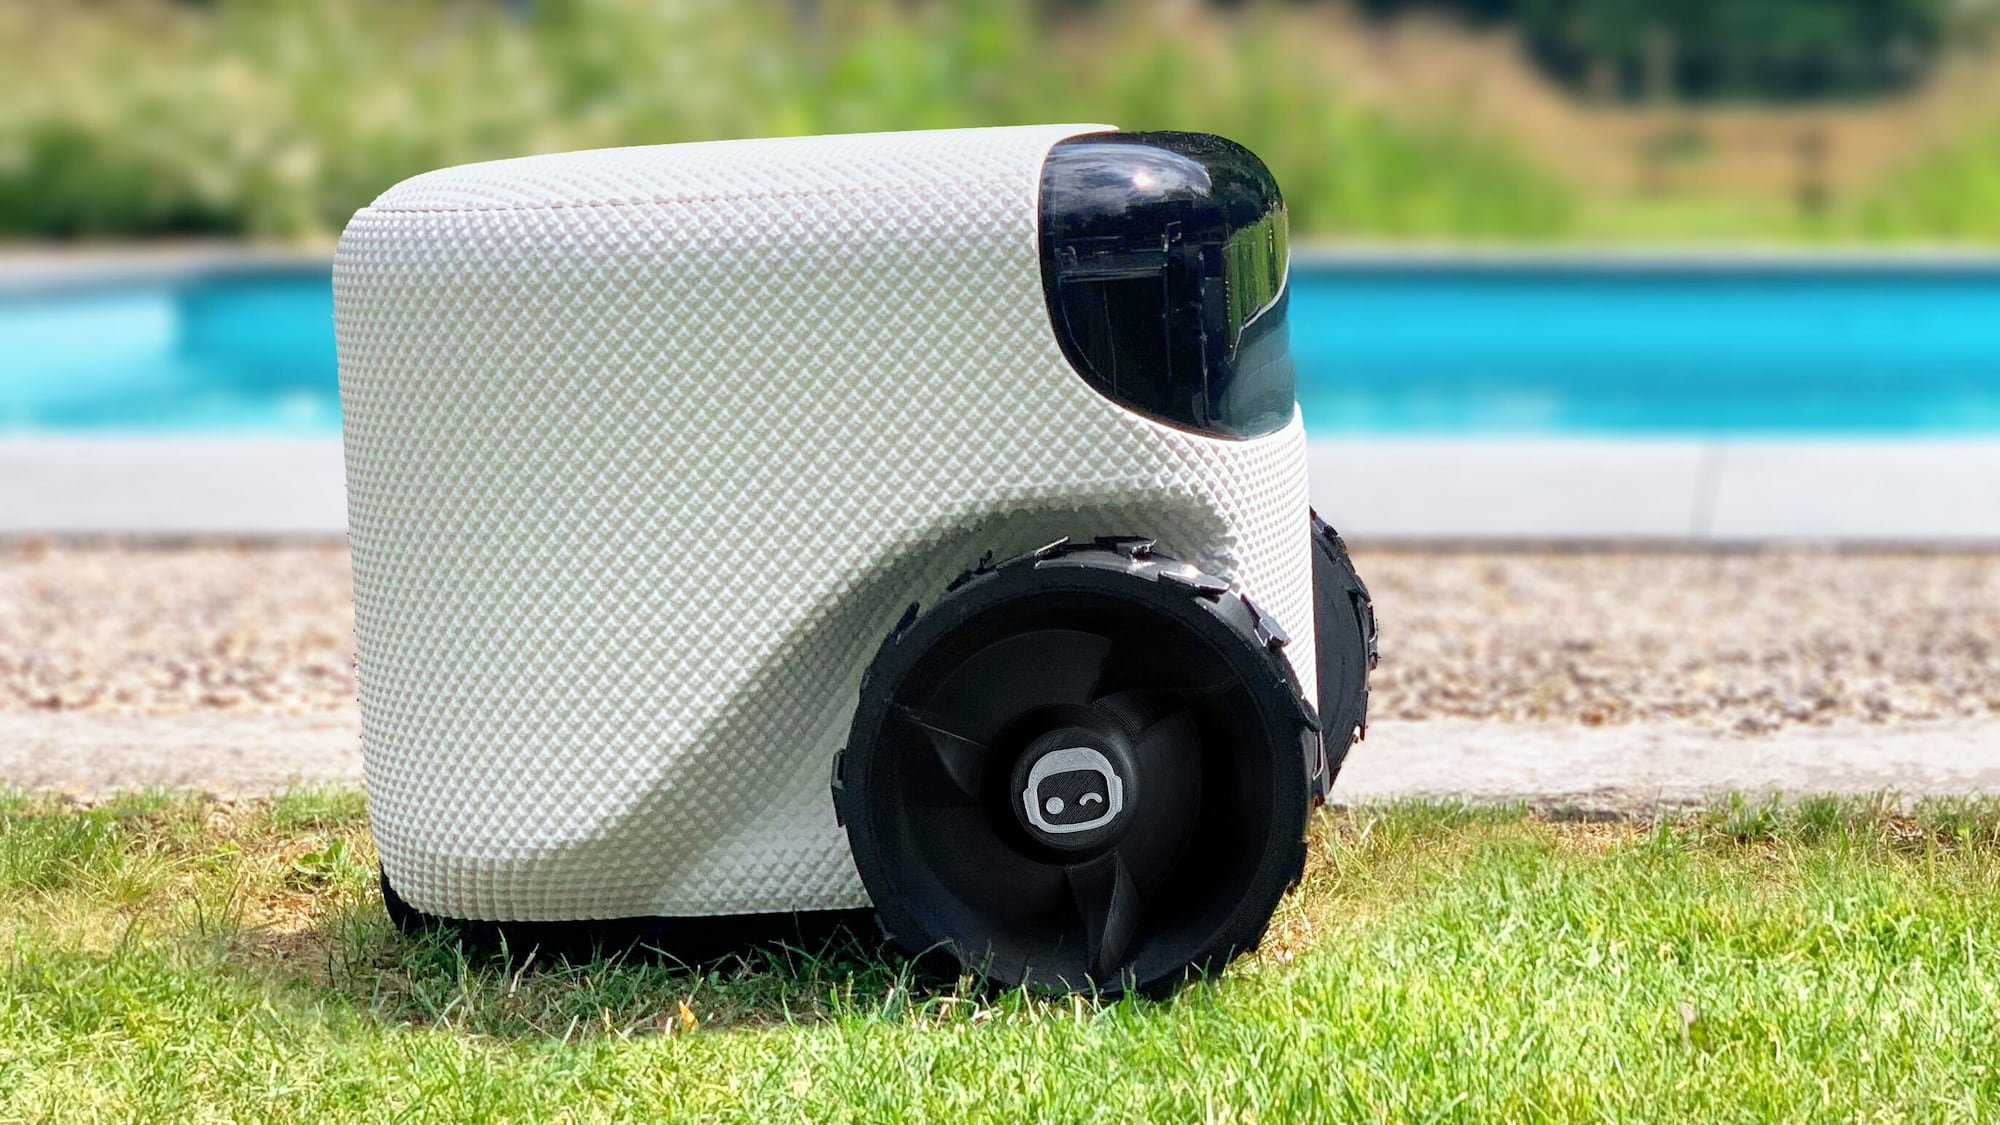 Toadi Autonomous Lawn Robot is intelligent because it's powered by AI